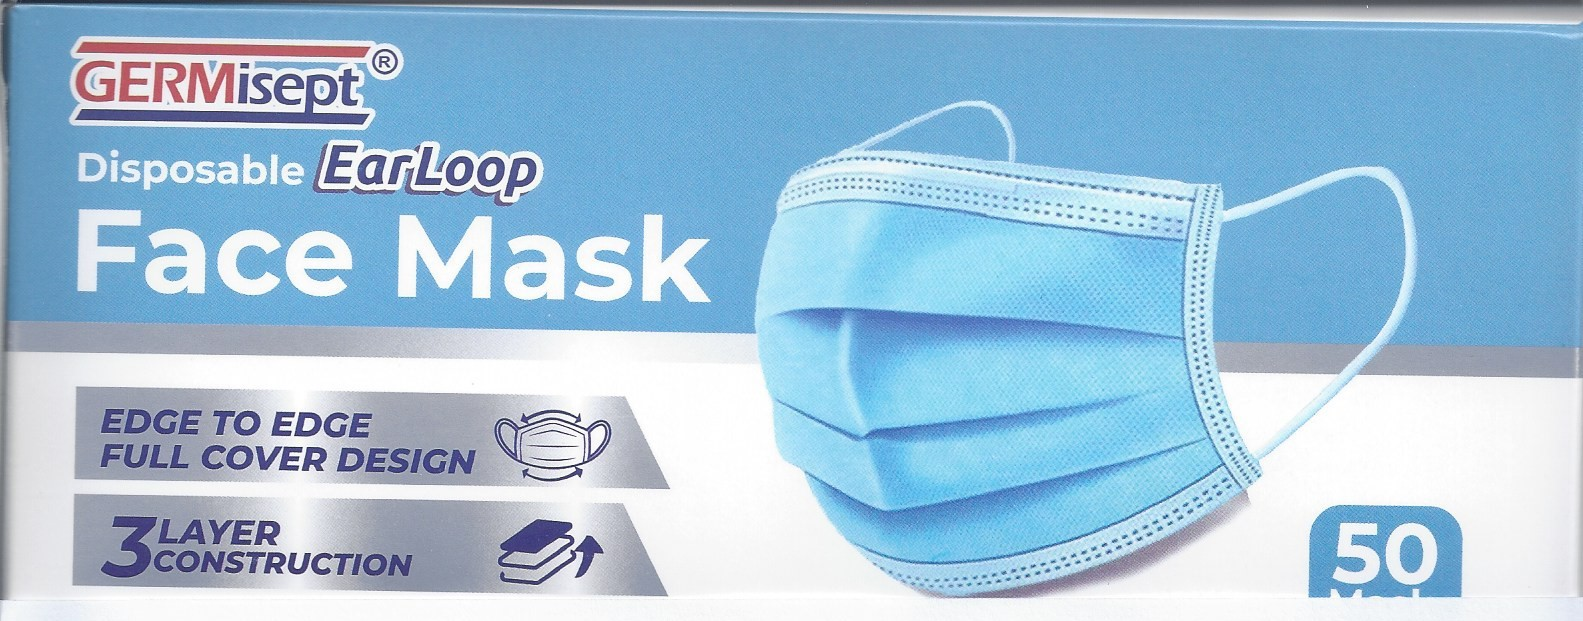 3 Ply Shopify image Facemask